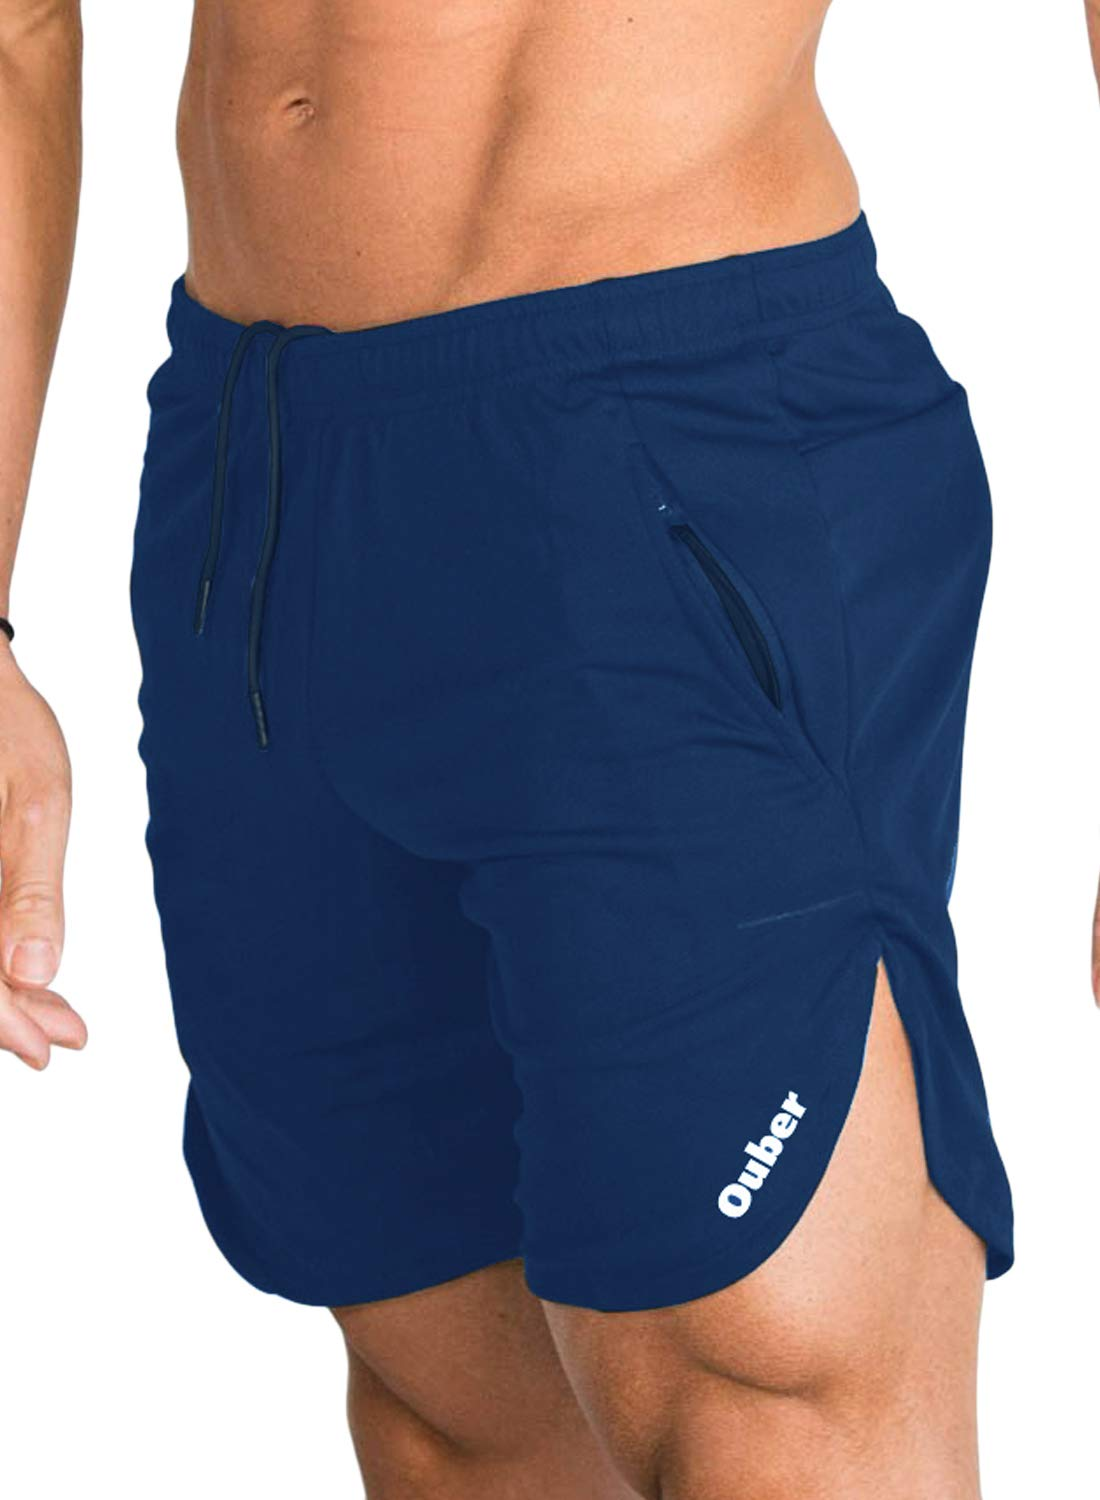 Ouber Men's Running Shorts Athletic Workout Gym